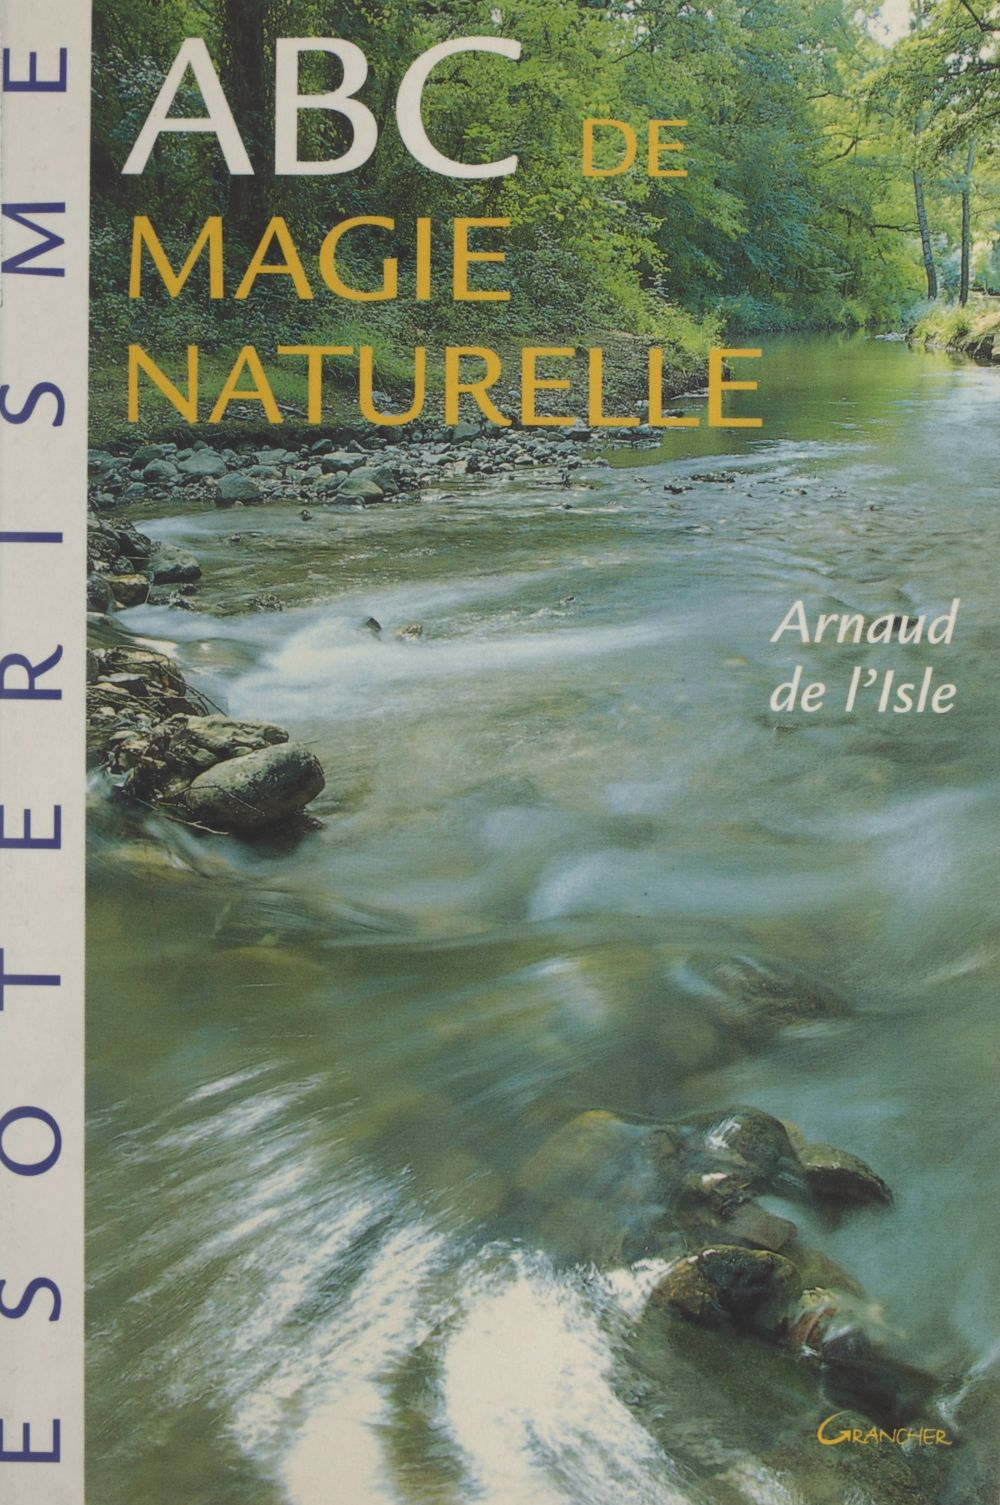 ABC de magie naturelle